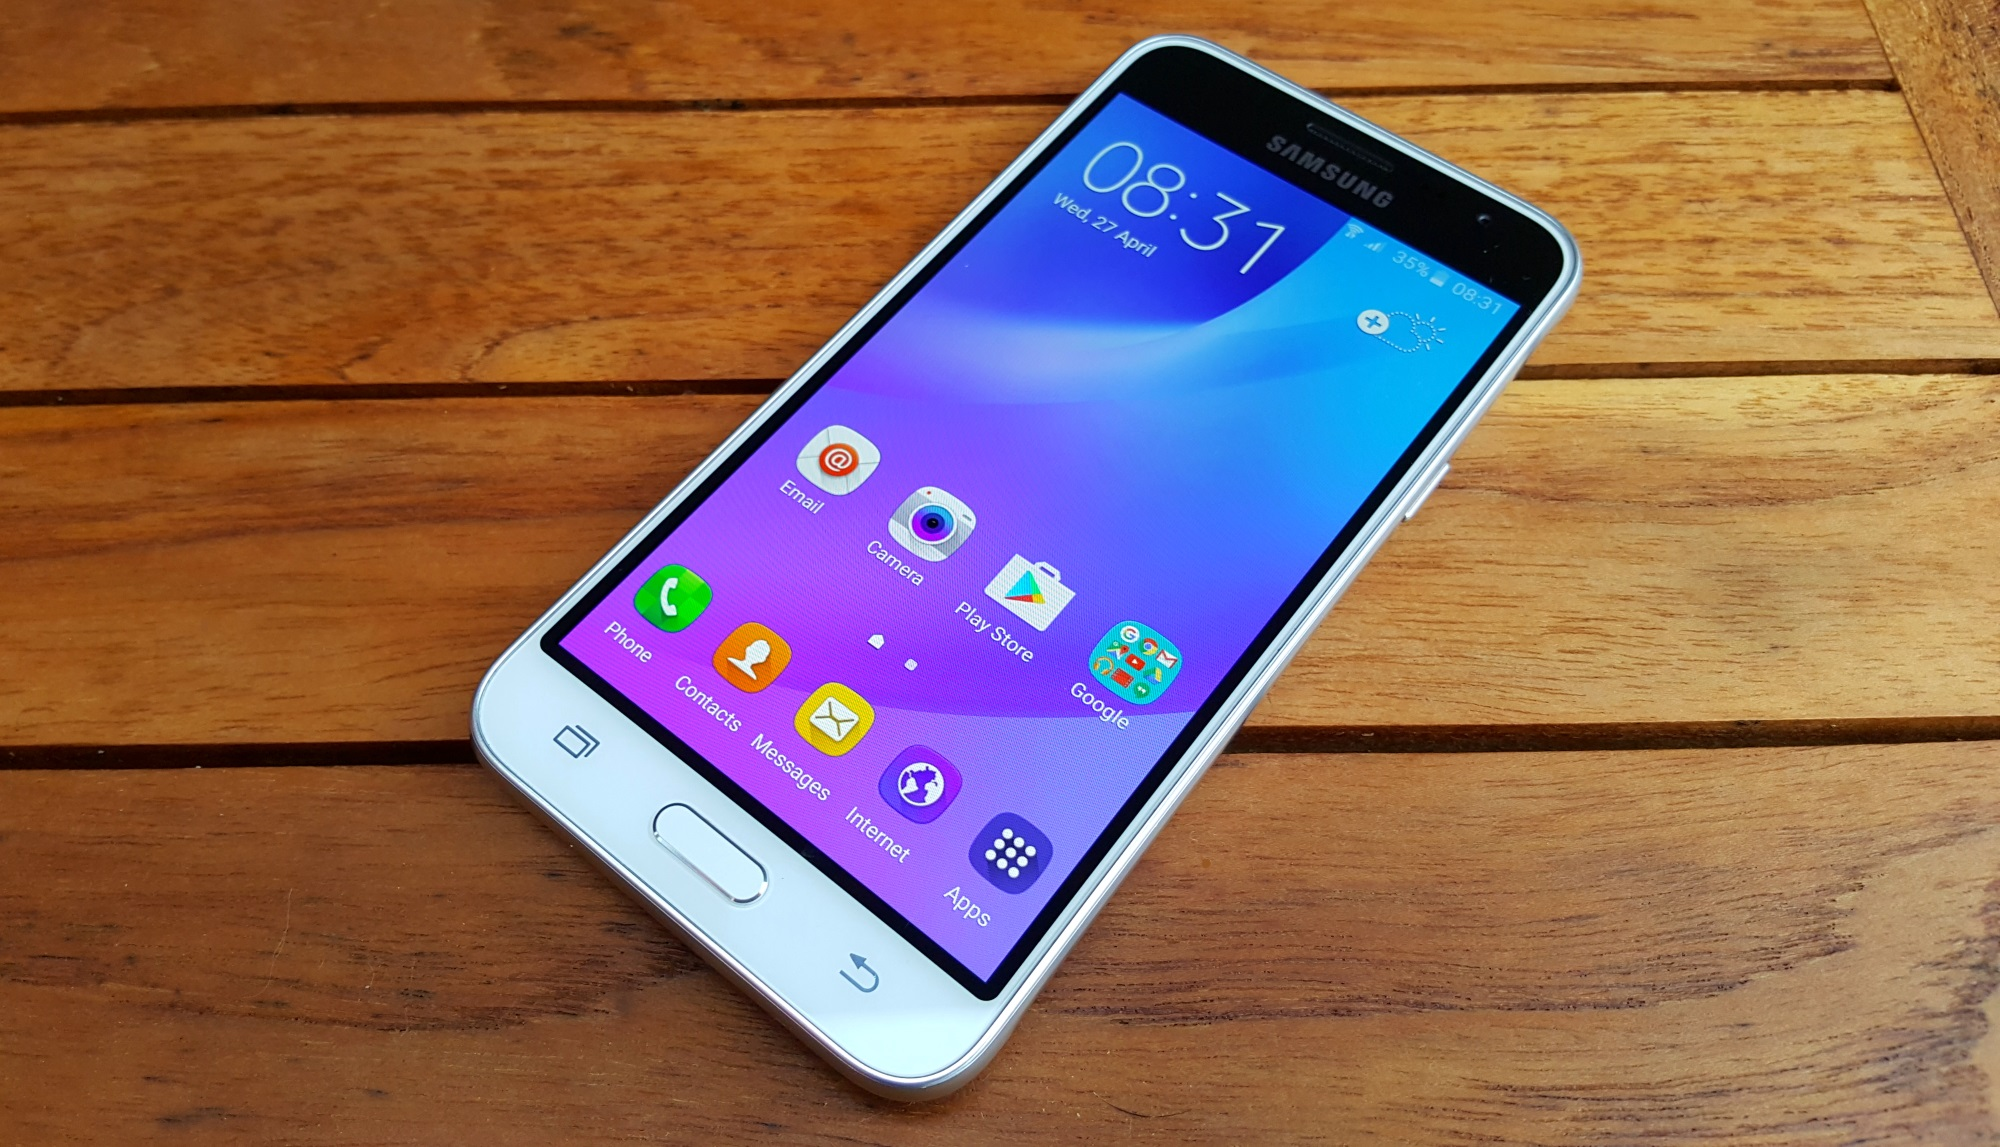 Samsung Galaxy J3 (2016) review: AMOLED for the masses